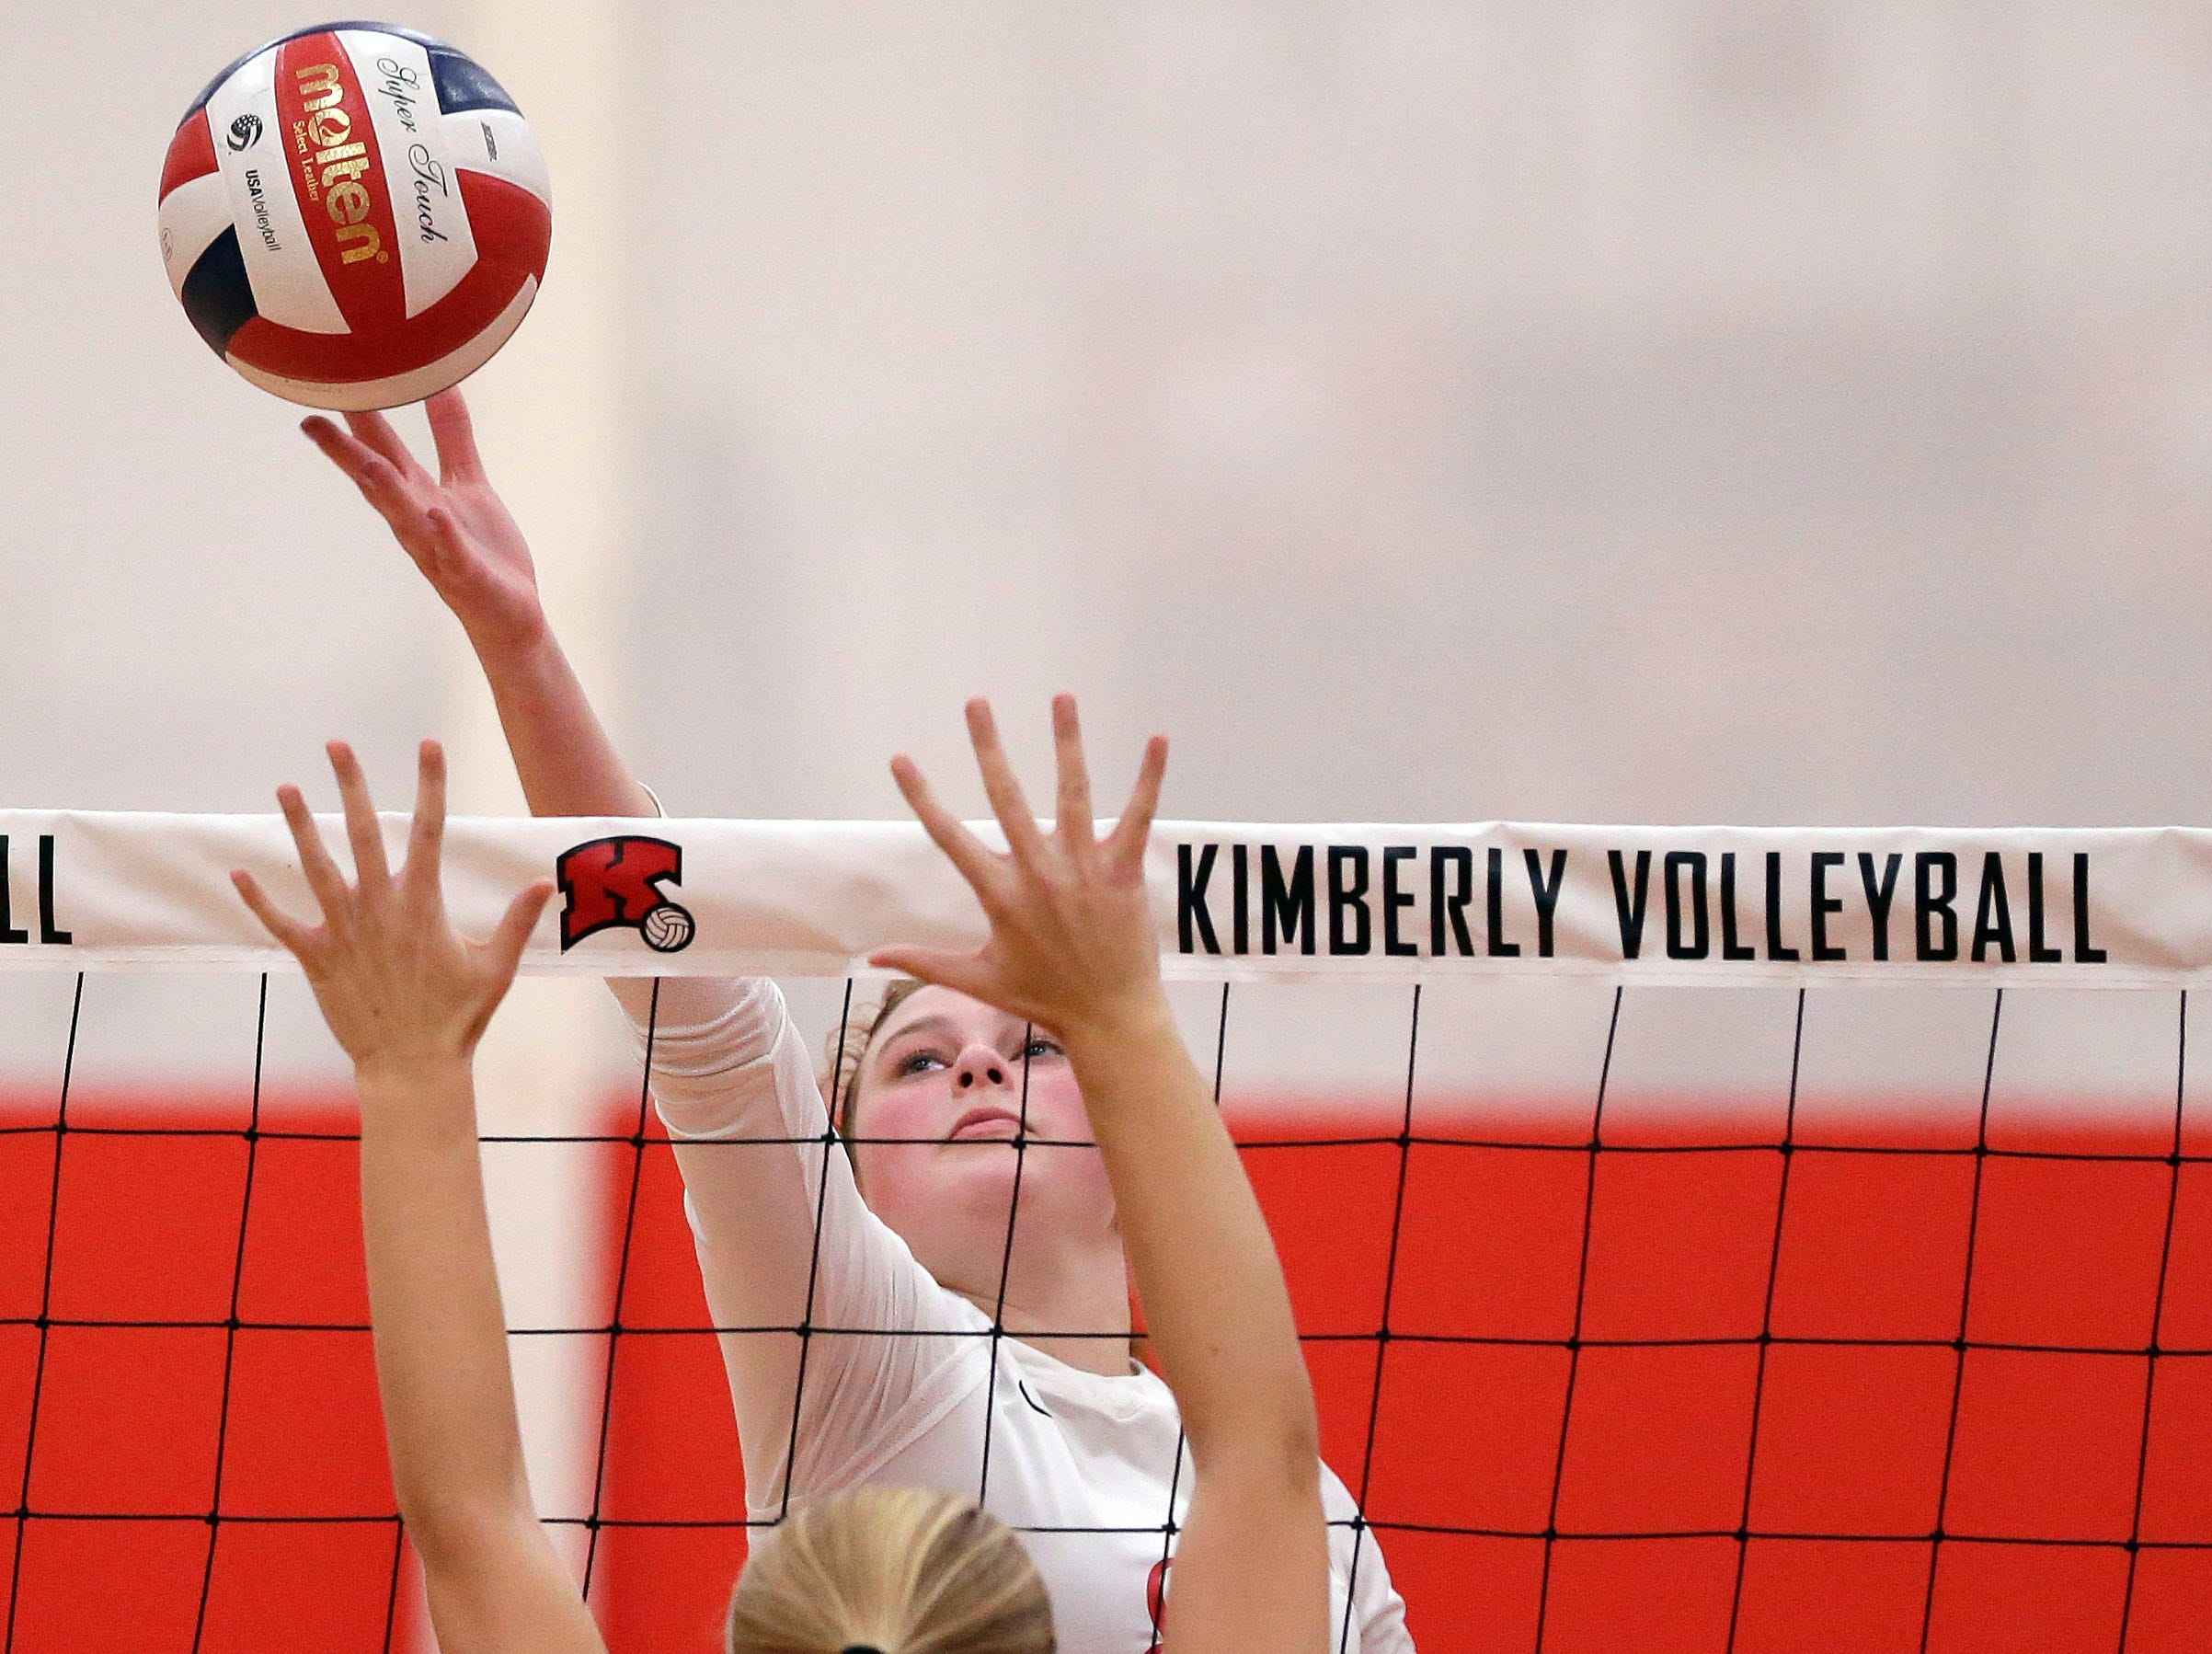 Carlee Doering of Kimberly stretches over Kaitlyn Nelson of Neenah in FVA girls volleyball Tuesday, September 11, 2018, at Kimberly High School in Kimberly, Wis. Ron Page/USA TODAY NETWORK-Wisconsin